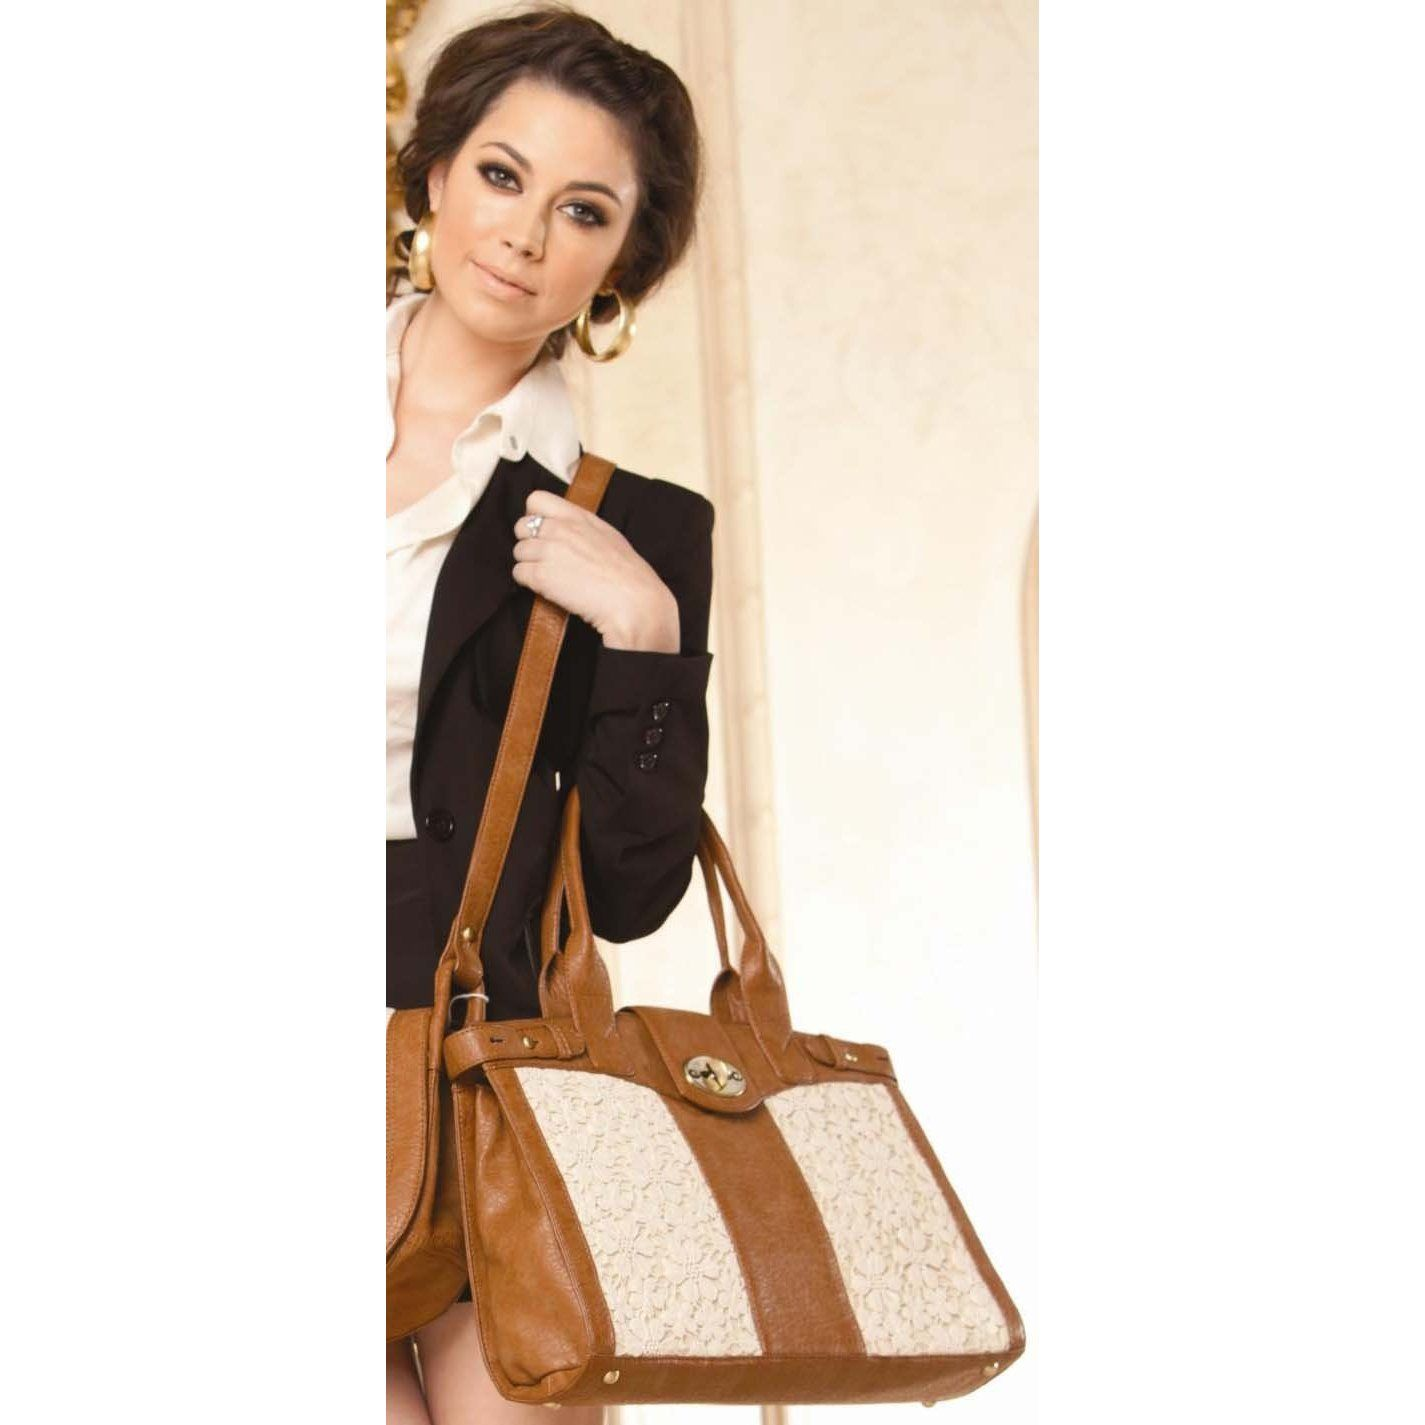 Lace laptop bag. On sale for $89.95